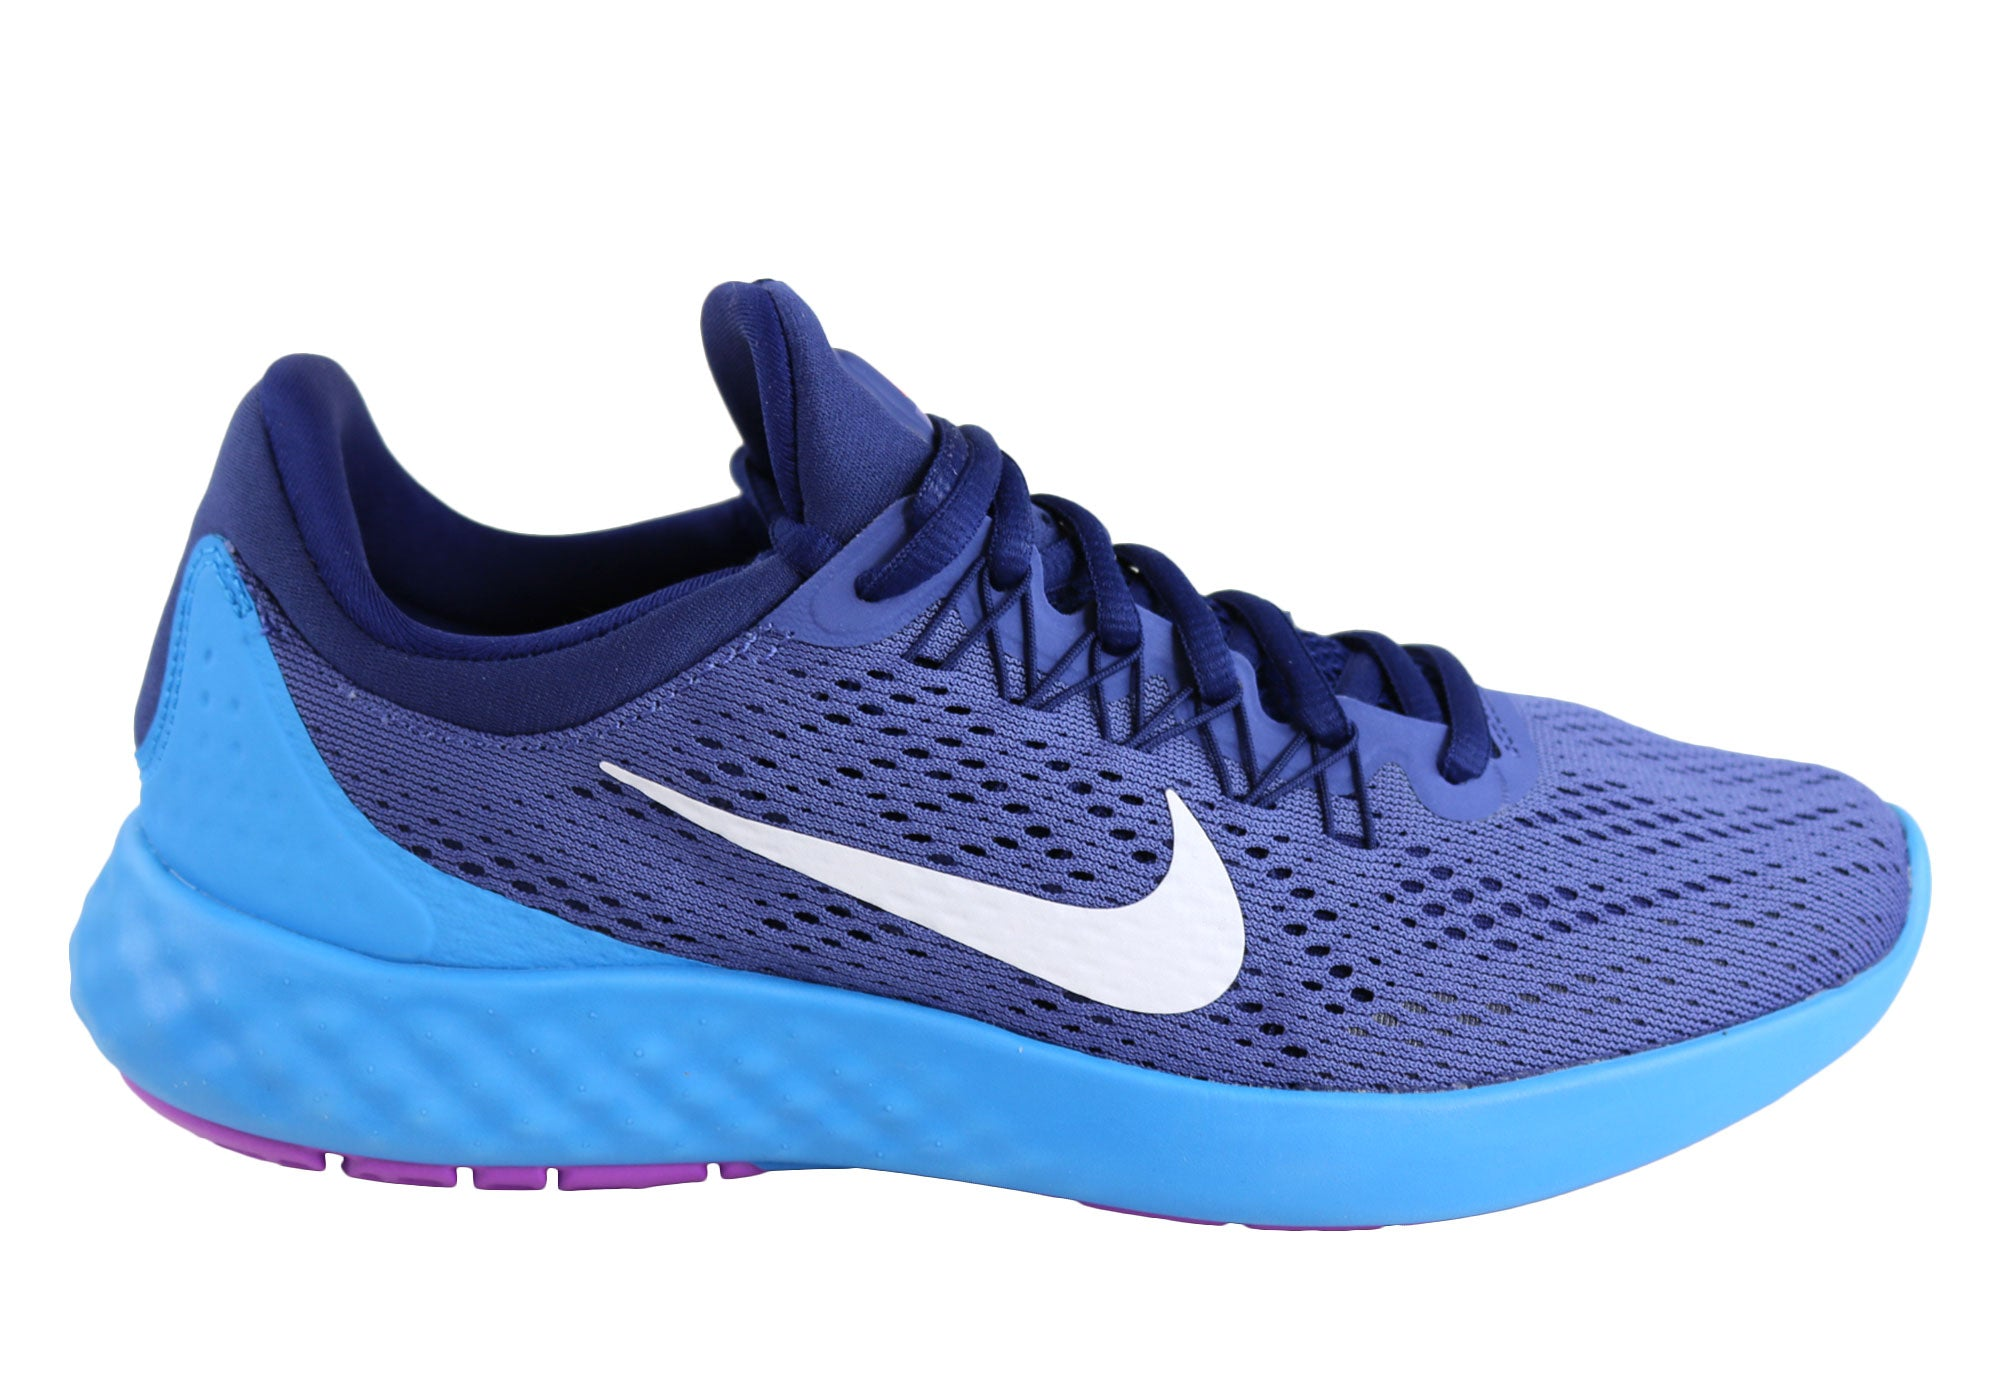 47a22c88f2f34 Home Nike Lunar Skyelux Womens Comfortable Running Sport Shoes. Purple ...